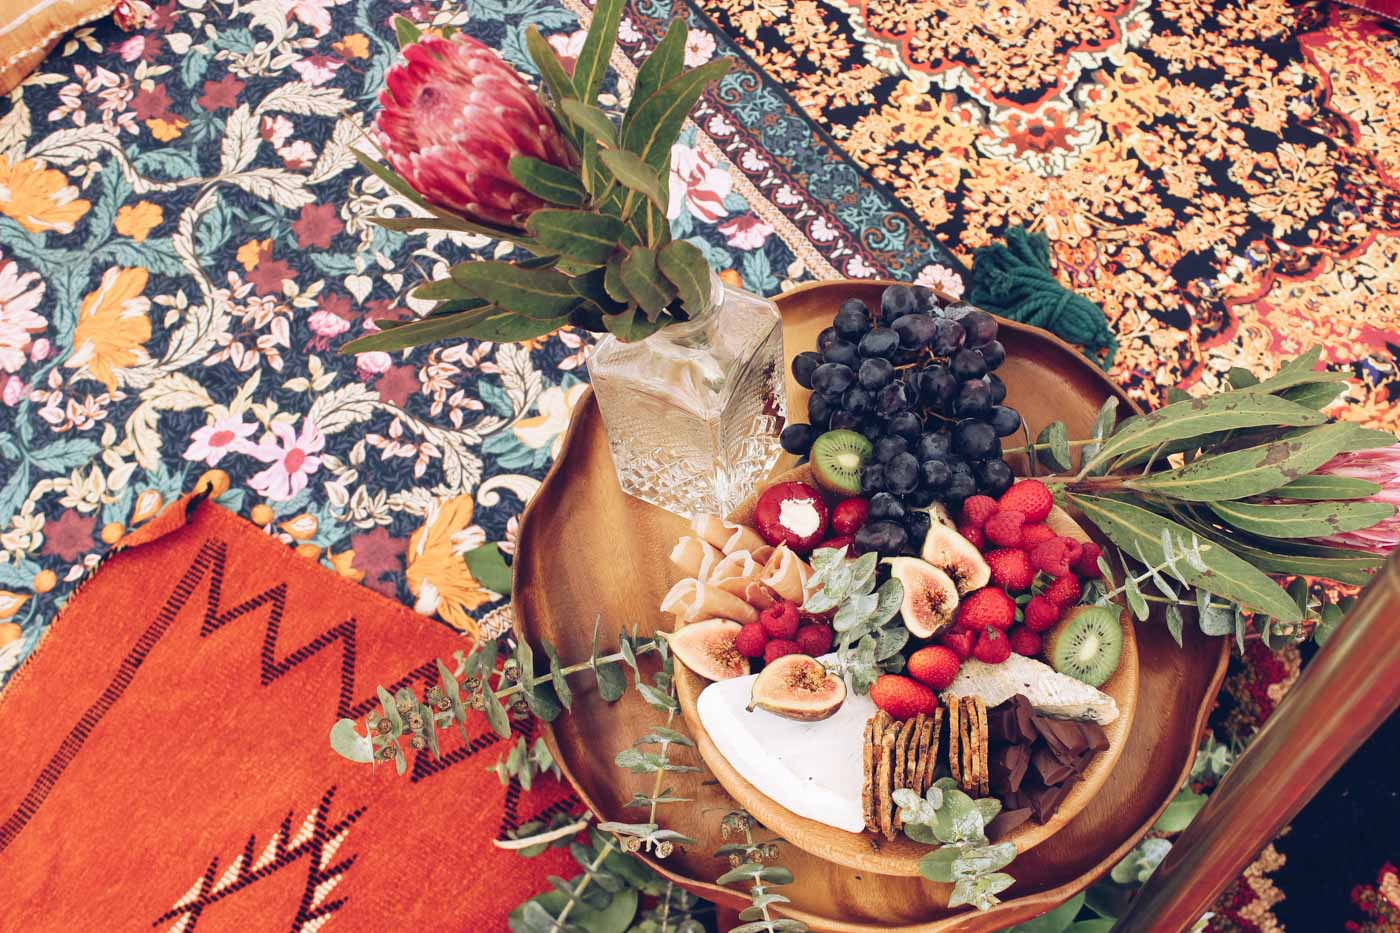 the_Collection_co_grazing_table_cairns_weddings_catering_grazing_platter_hire_pop_up_picnic_bell_tent_event_hire_styling-43-2.jpg